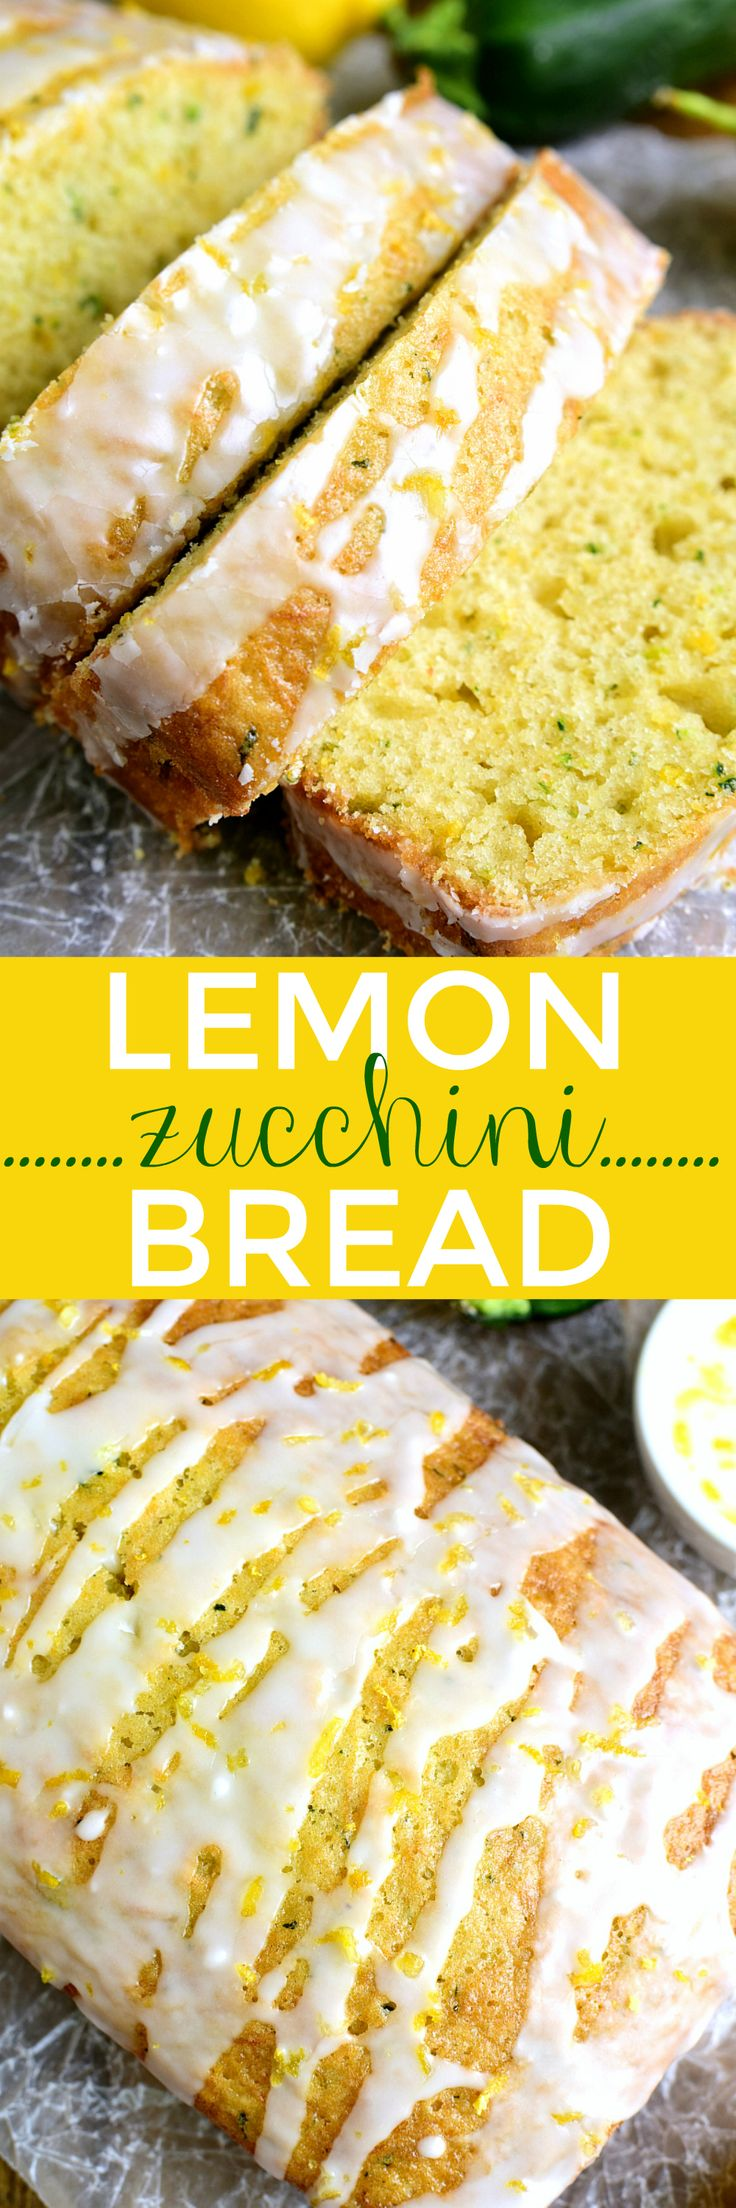 This Lemon Zucchini Bread combines two favorites in one delicious loaf of bread! Topped with a sweet lemony glaze, it's a great way to sneak in extra veggies and the BEST way to wake up! (Baking Powder Garden)